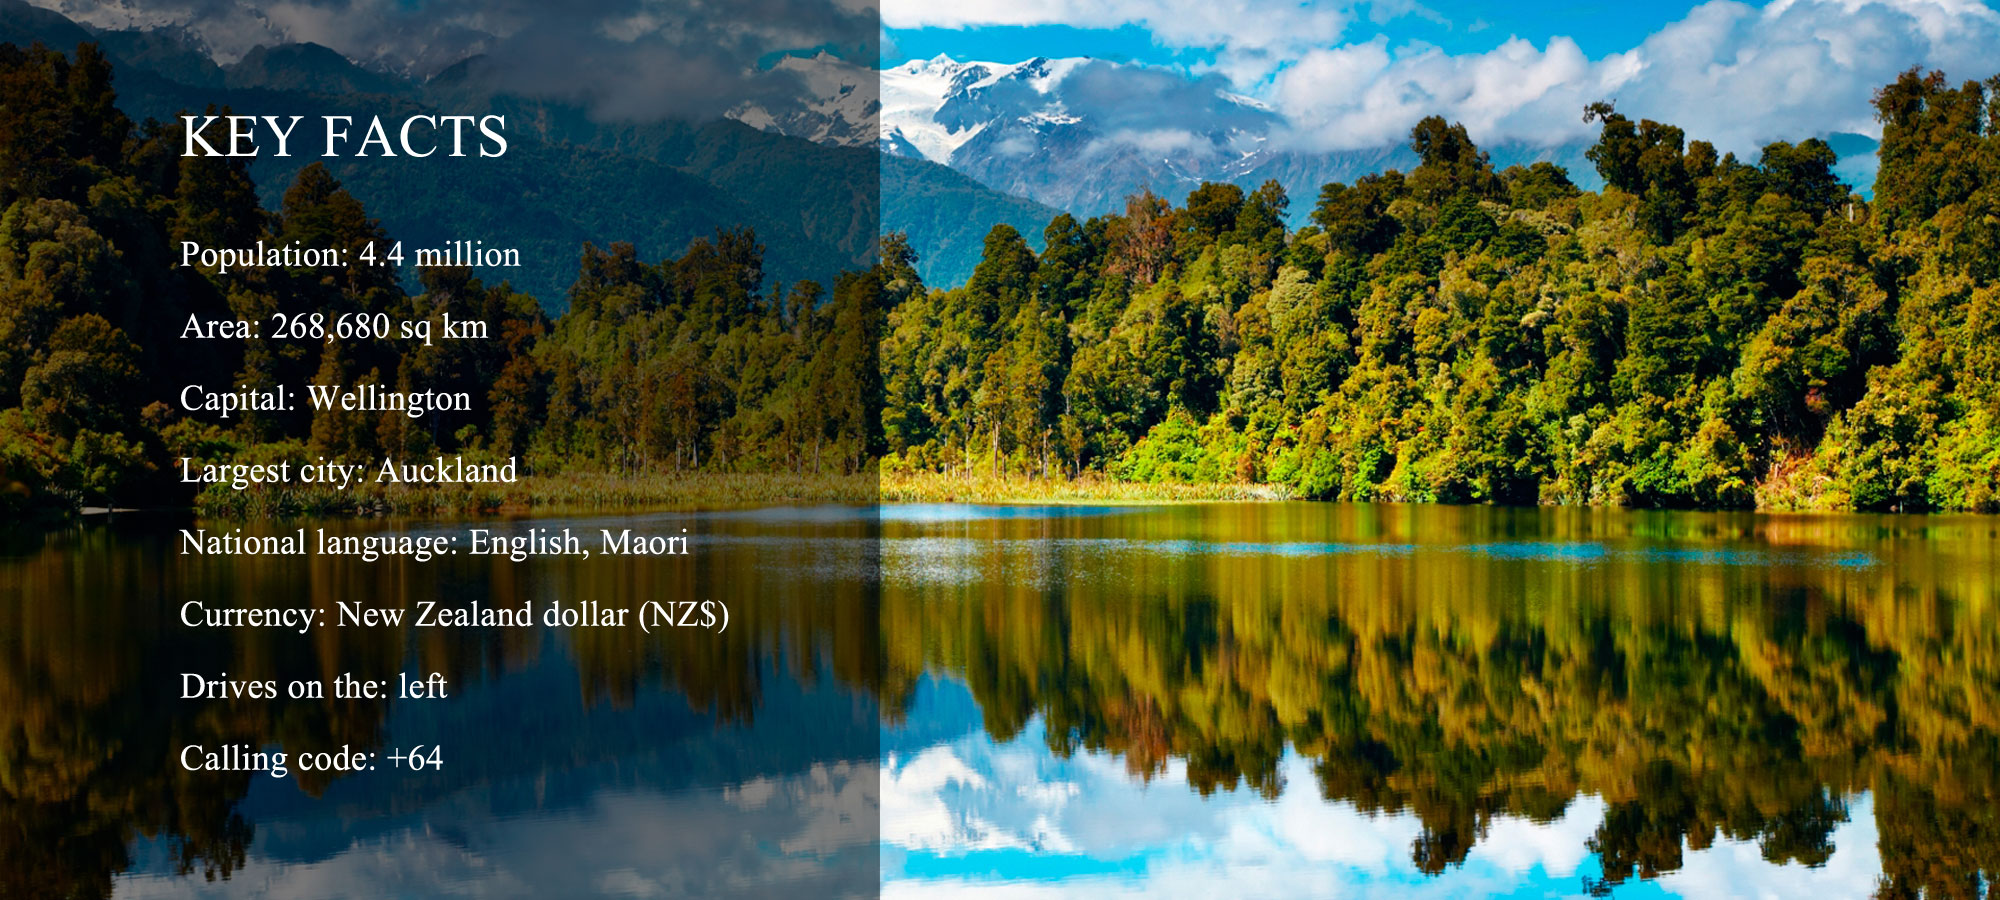 Top Reasons To Visit New Zealand - Where is new zealand located